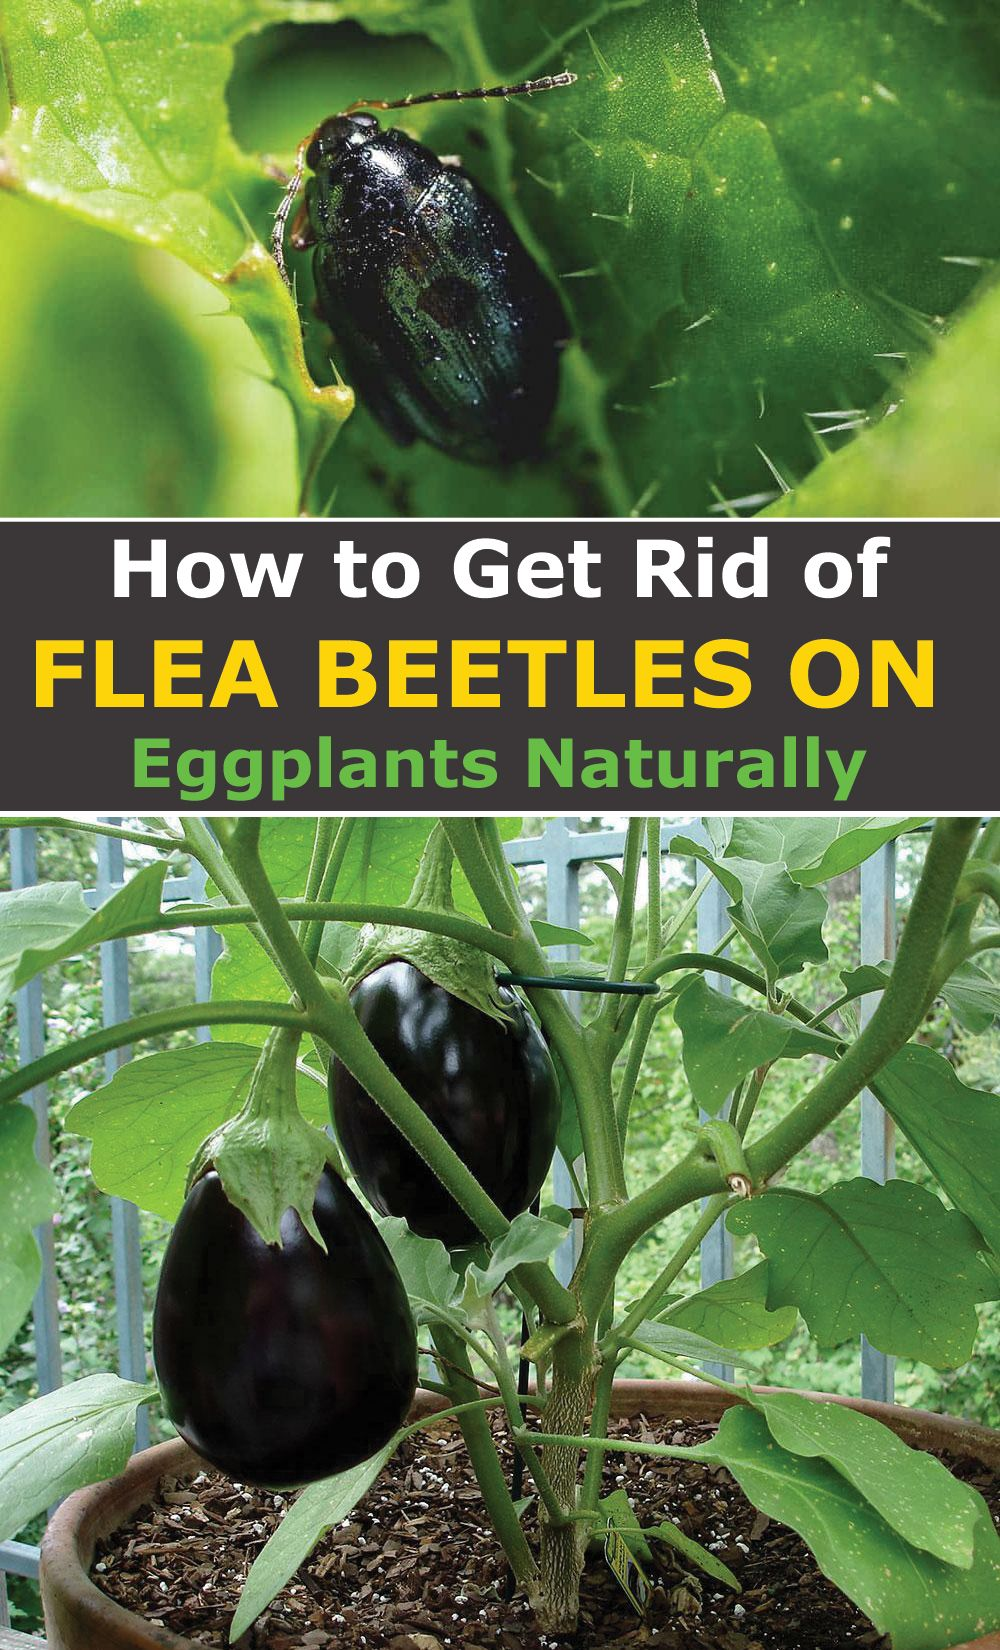 bbe867909443d5fbfc32a60498a1fd91 - How To Get Rid Of Flea Beetles In House